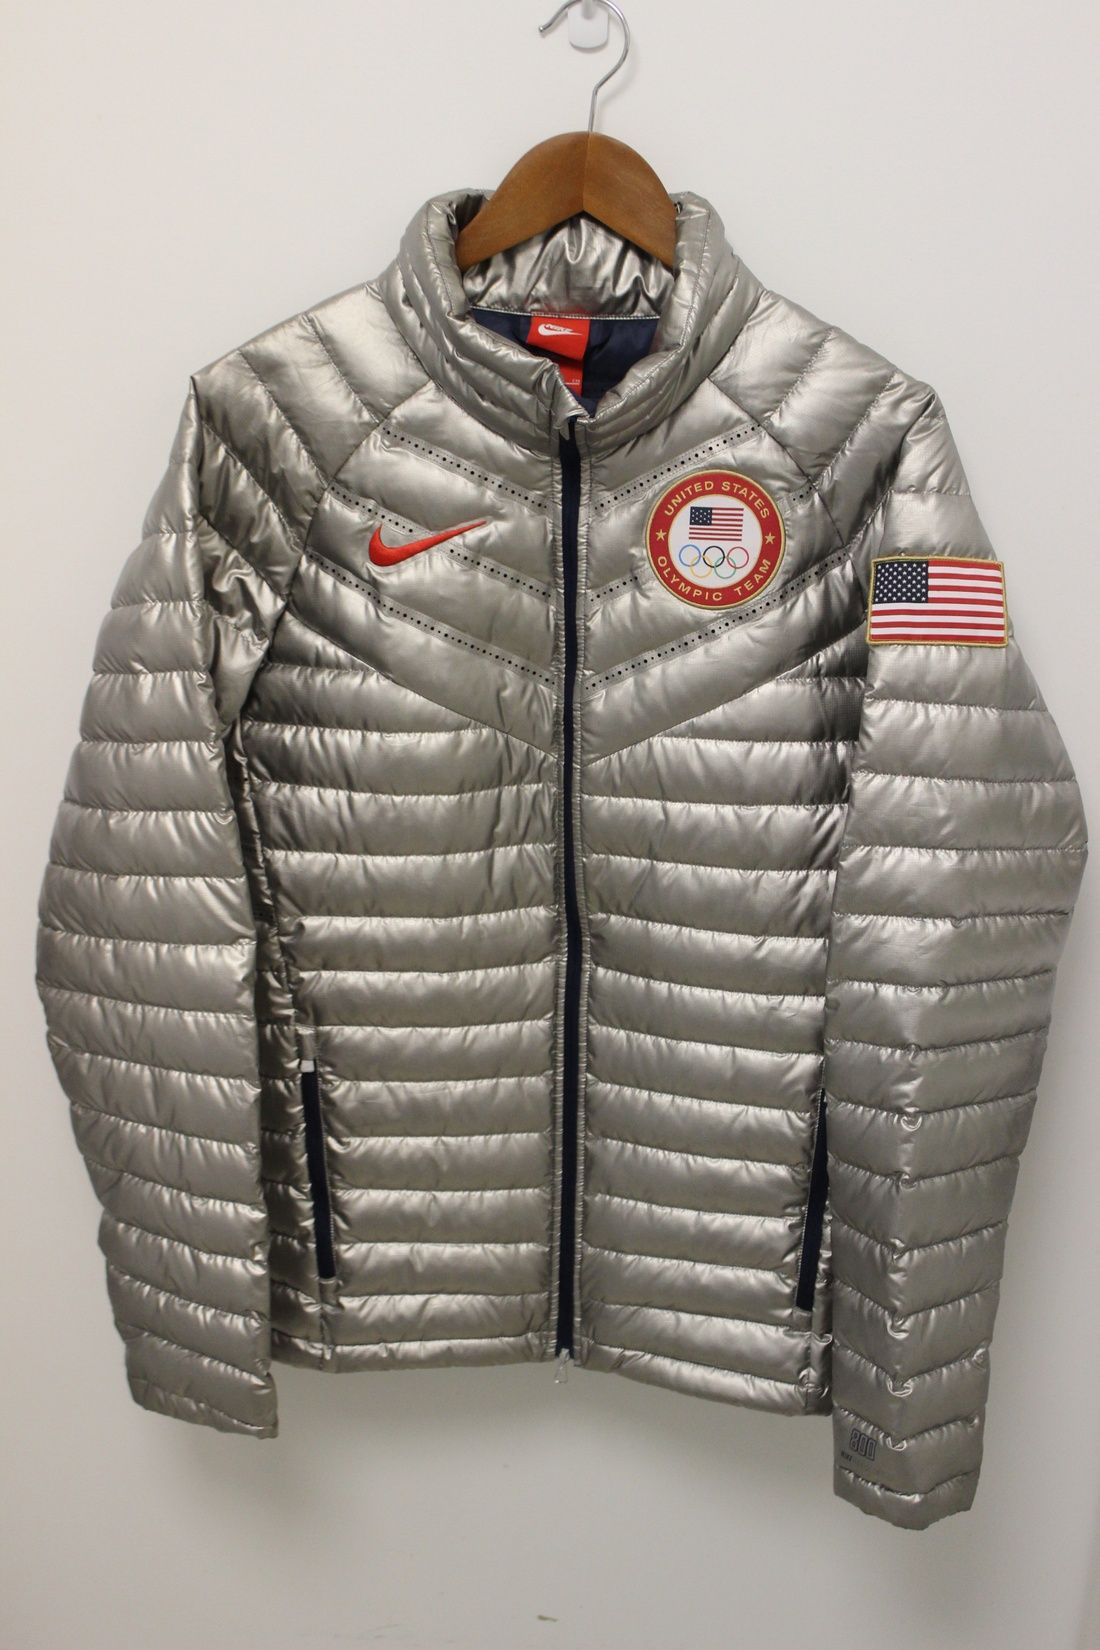 eb7cd3a72 Nike Aeroloft 800 Summit 2014 Olympic Silver Jacket Size S $270 ...